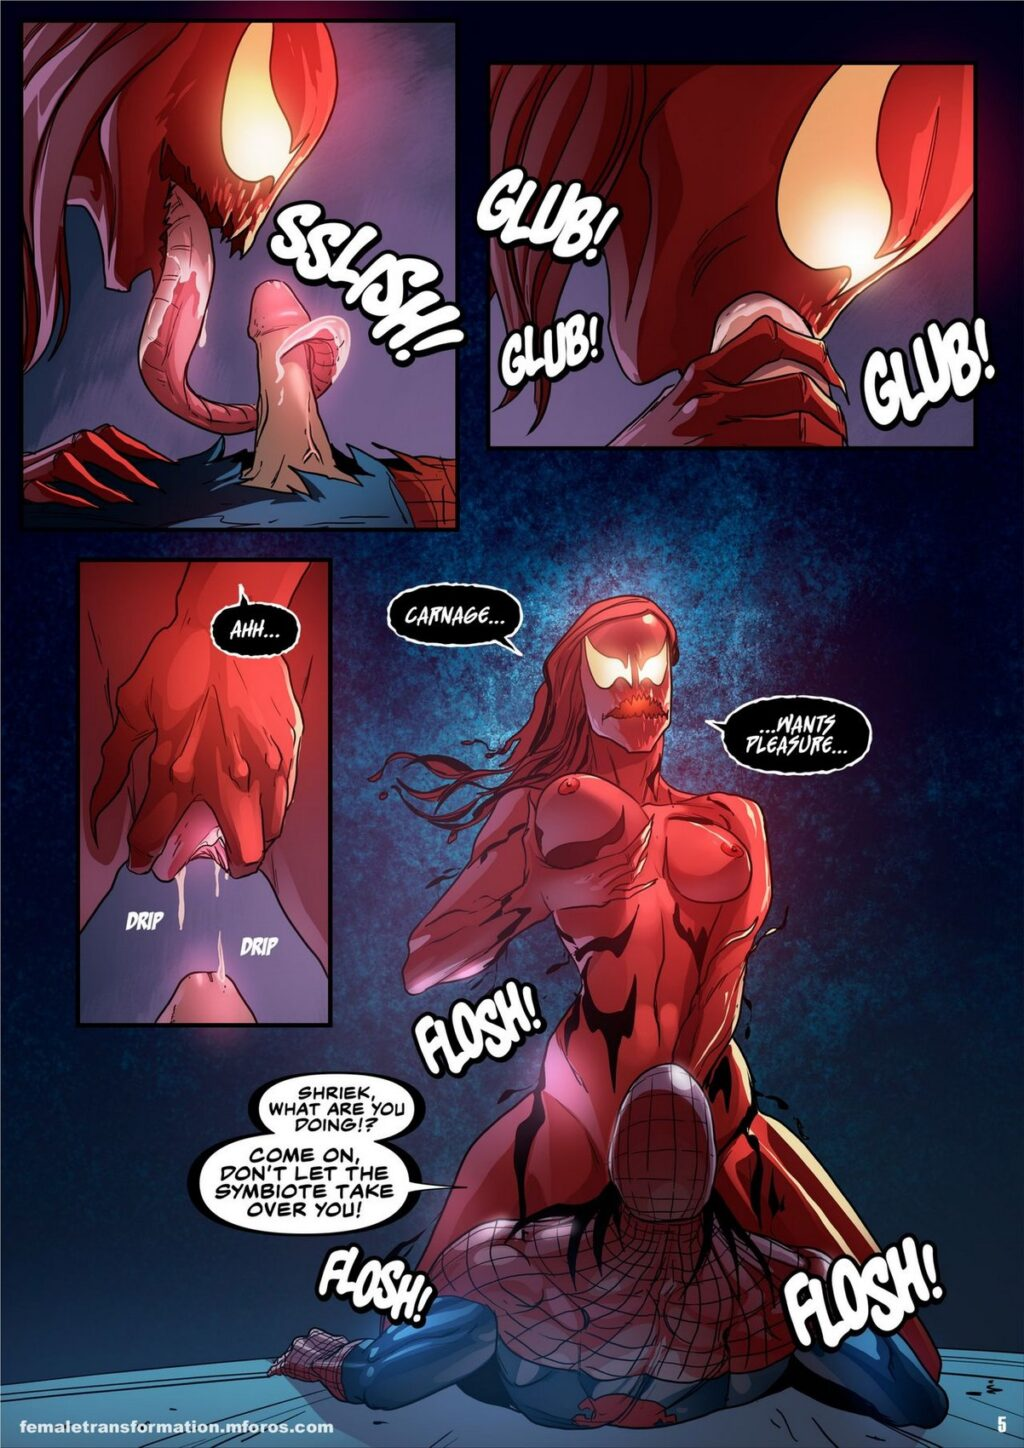 Marvel-Porn-Comics-Mary-Jane-Gang-rape-orgy-Bondage-BDSM-Creature-Cuties-Venom-Carnage-Spider-man-parasite-sexy-slimes-Turned-out-mind-control-Symbiote-Queen-#-1-groupe-viol-orgie-Bondage-BDSM-Créature-Cuties-Venom-Carnage-Spider-man-parasite-sexy-slimes-s'est-avéré-contrôle-de-l'esprit